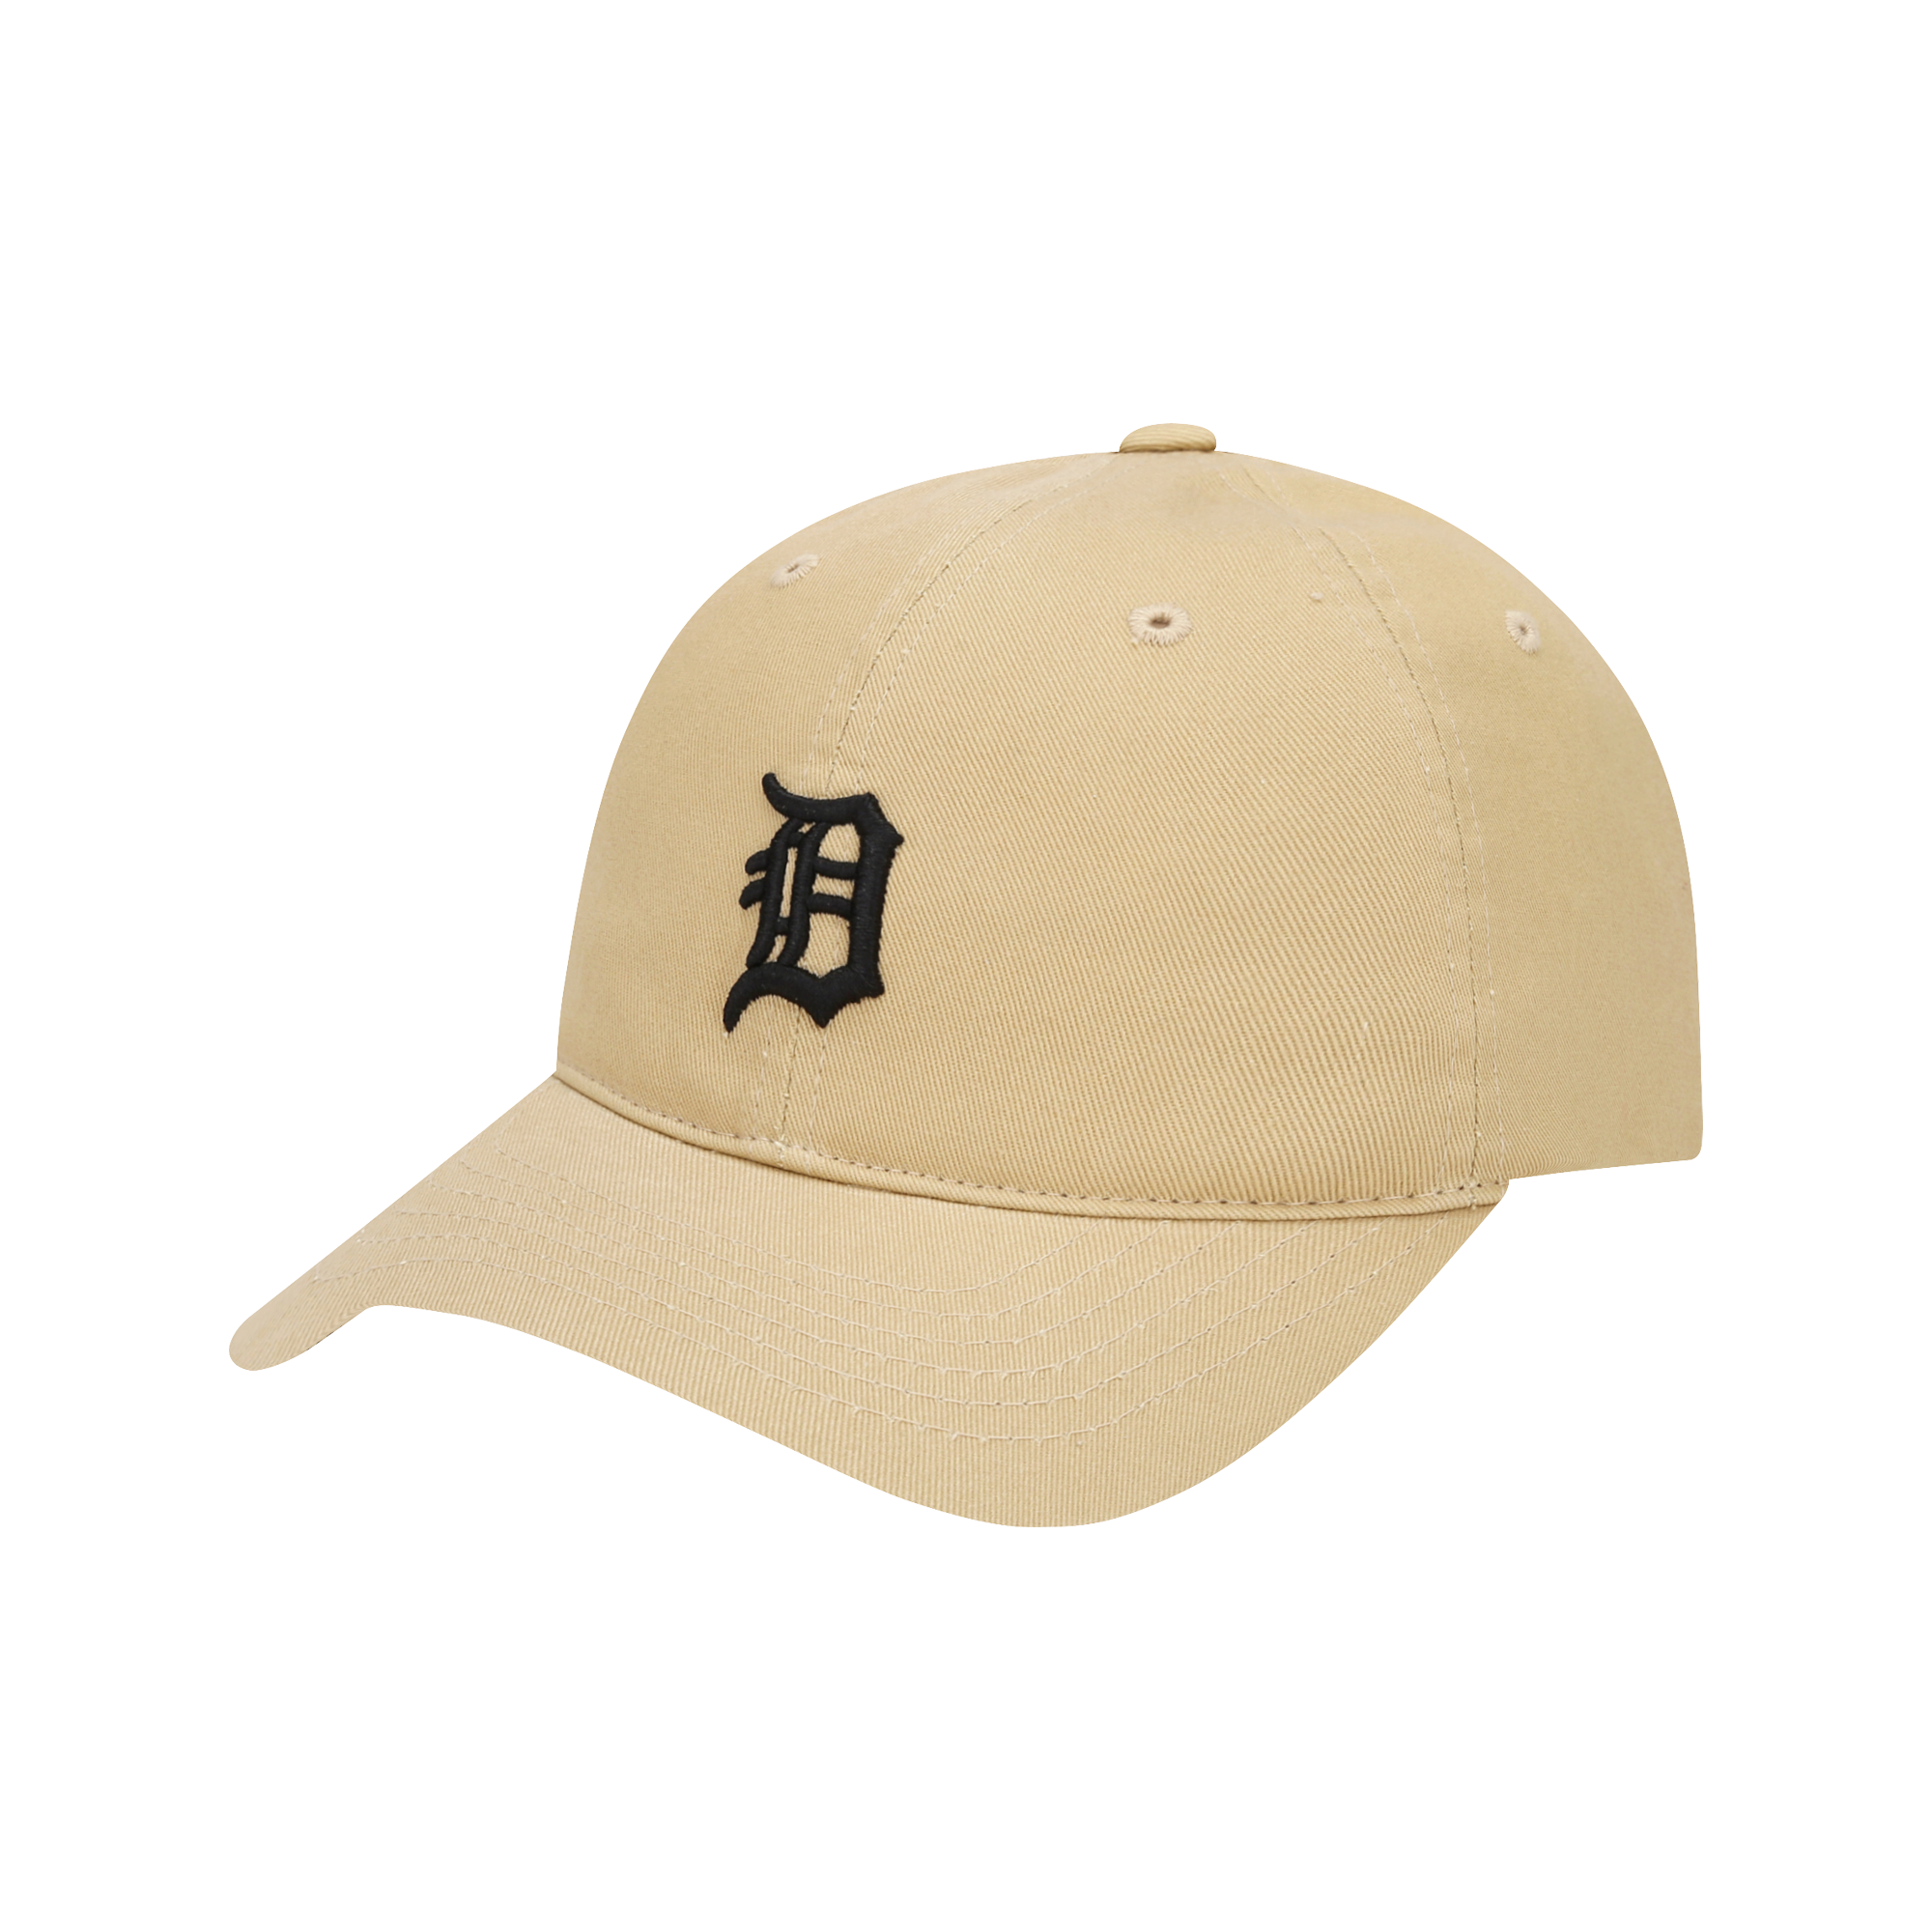 DETROIT TIGERS ROOKIE BALL CAP